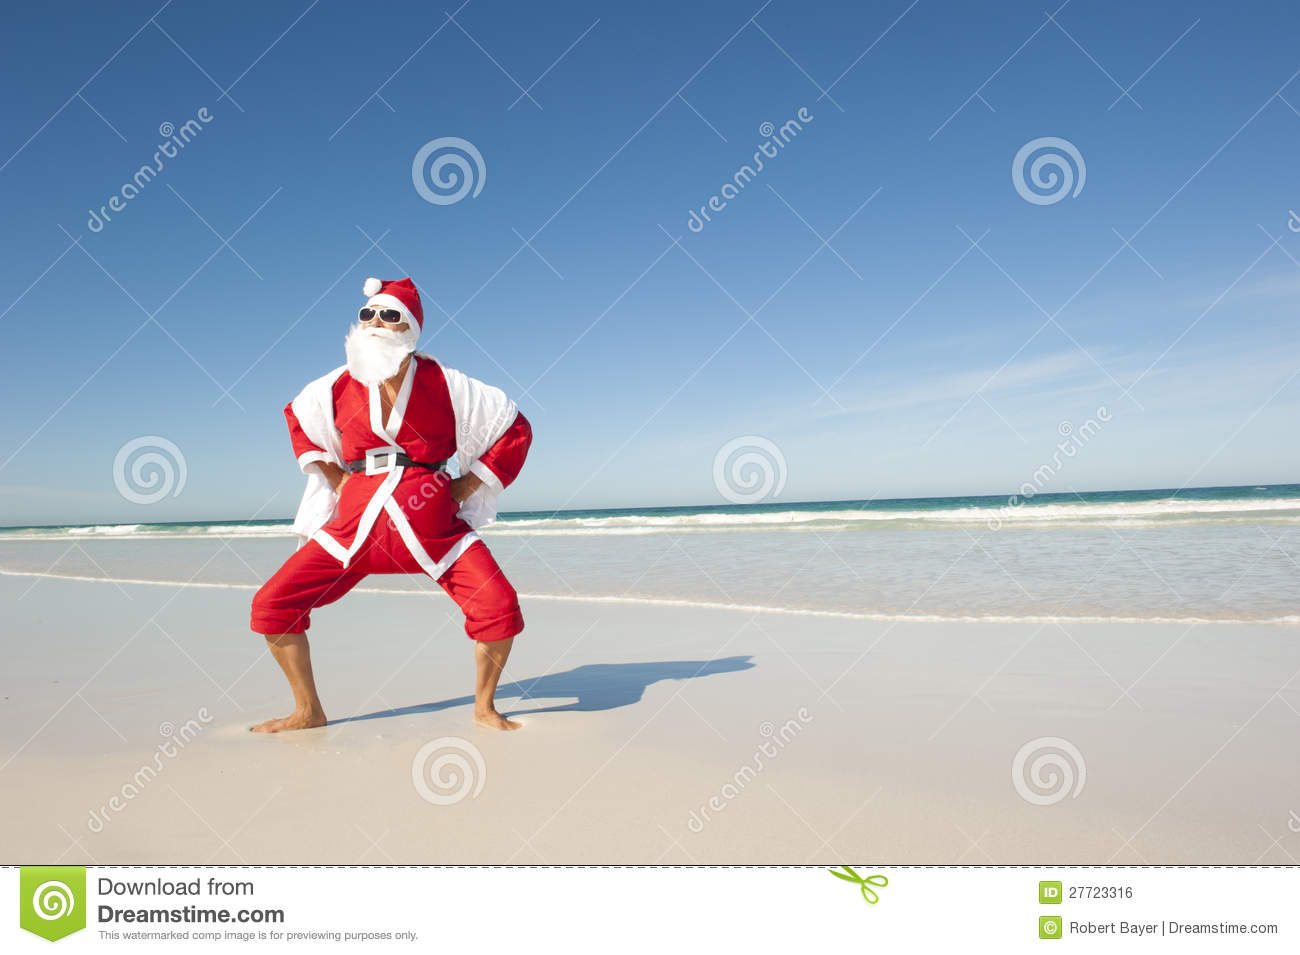 Santa Claus standing confident with towel at beach, having fun and joy ...